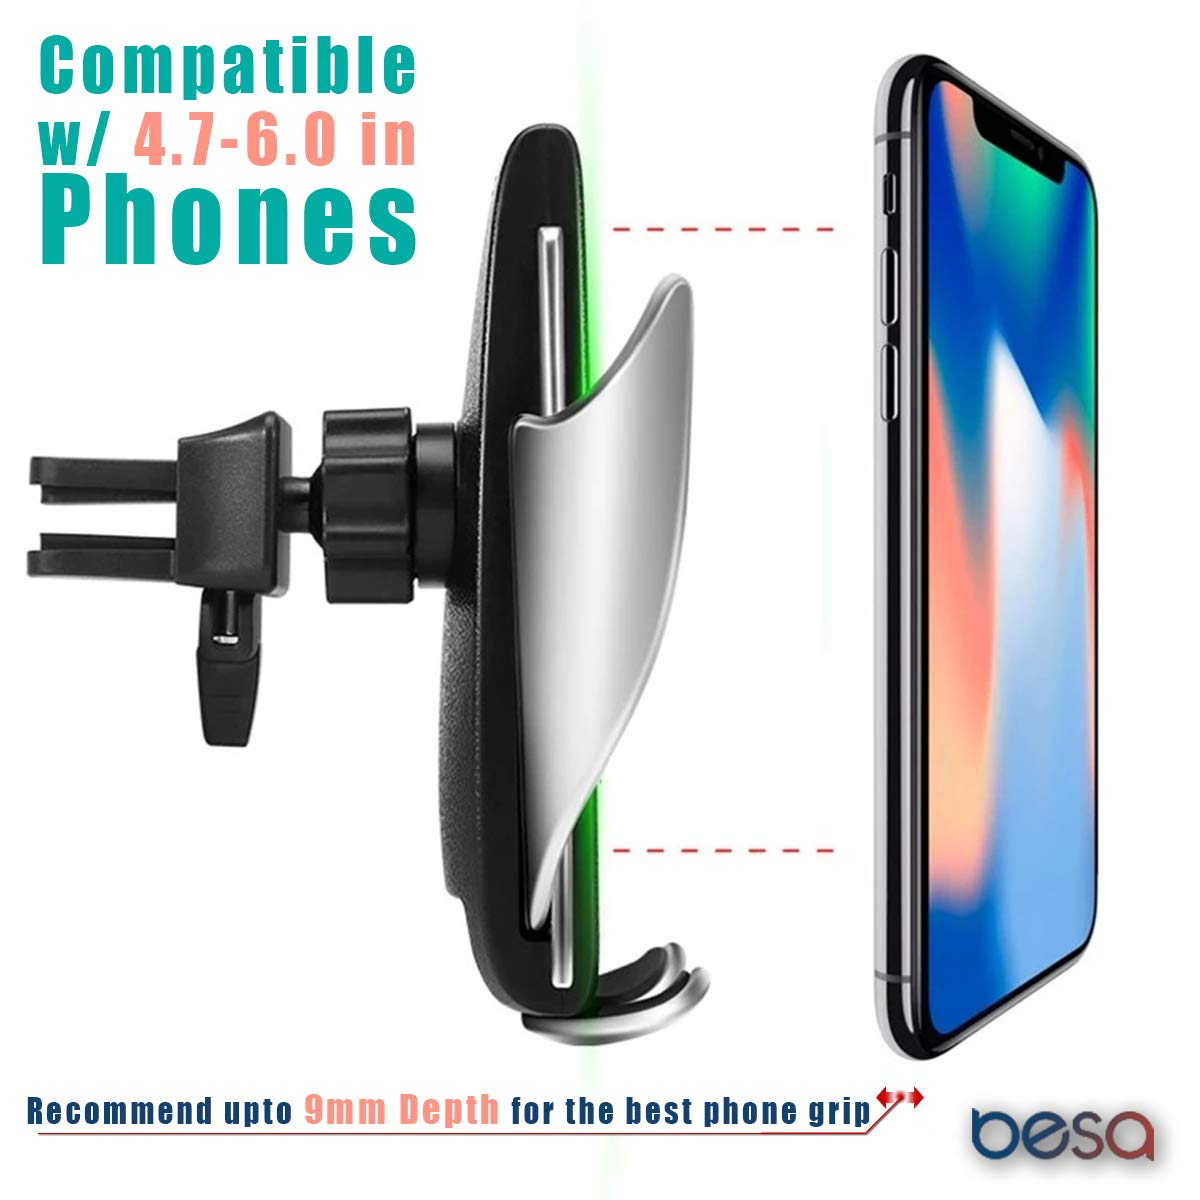 BESA Wireless Car Charger Air Vent Auto-Clamping Mount Holder with 10W Qi Wireless Charging Compatible with iPhone 8 X XS Samsung S7 S8 S9 S10 /& Other up to 6 INCH Phones